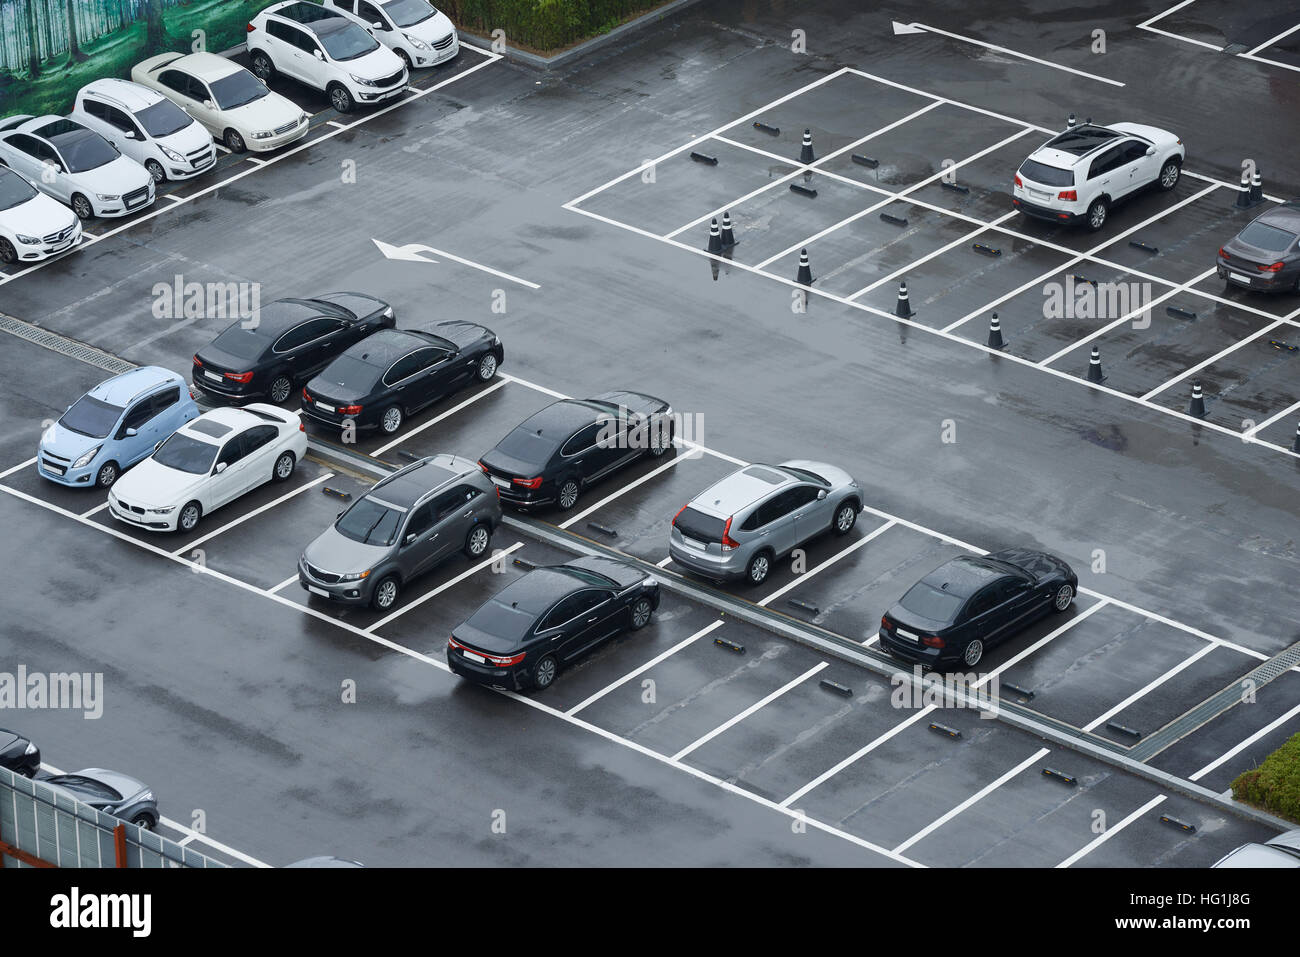 Outdoor Parking lot overlooked from high place in rainy day in Korea. - Stock Image